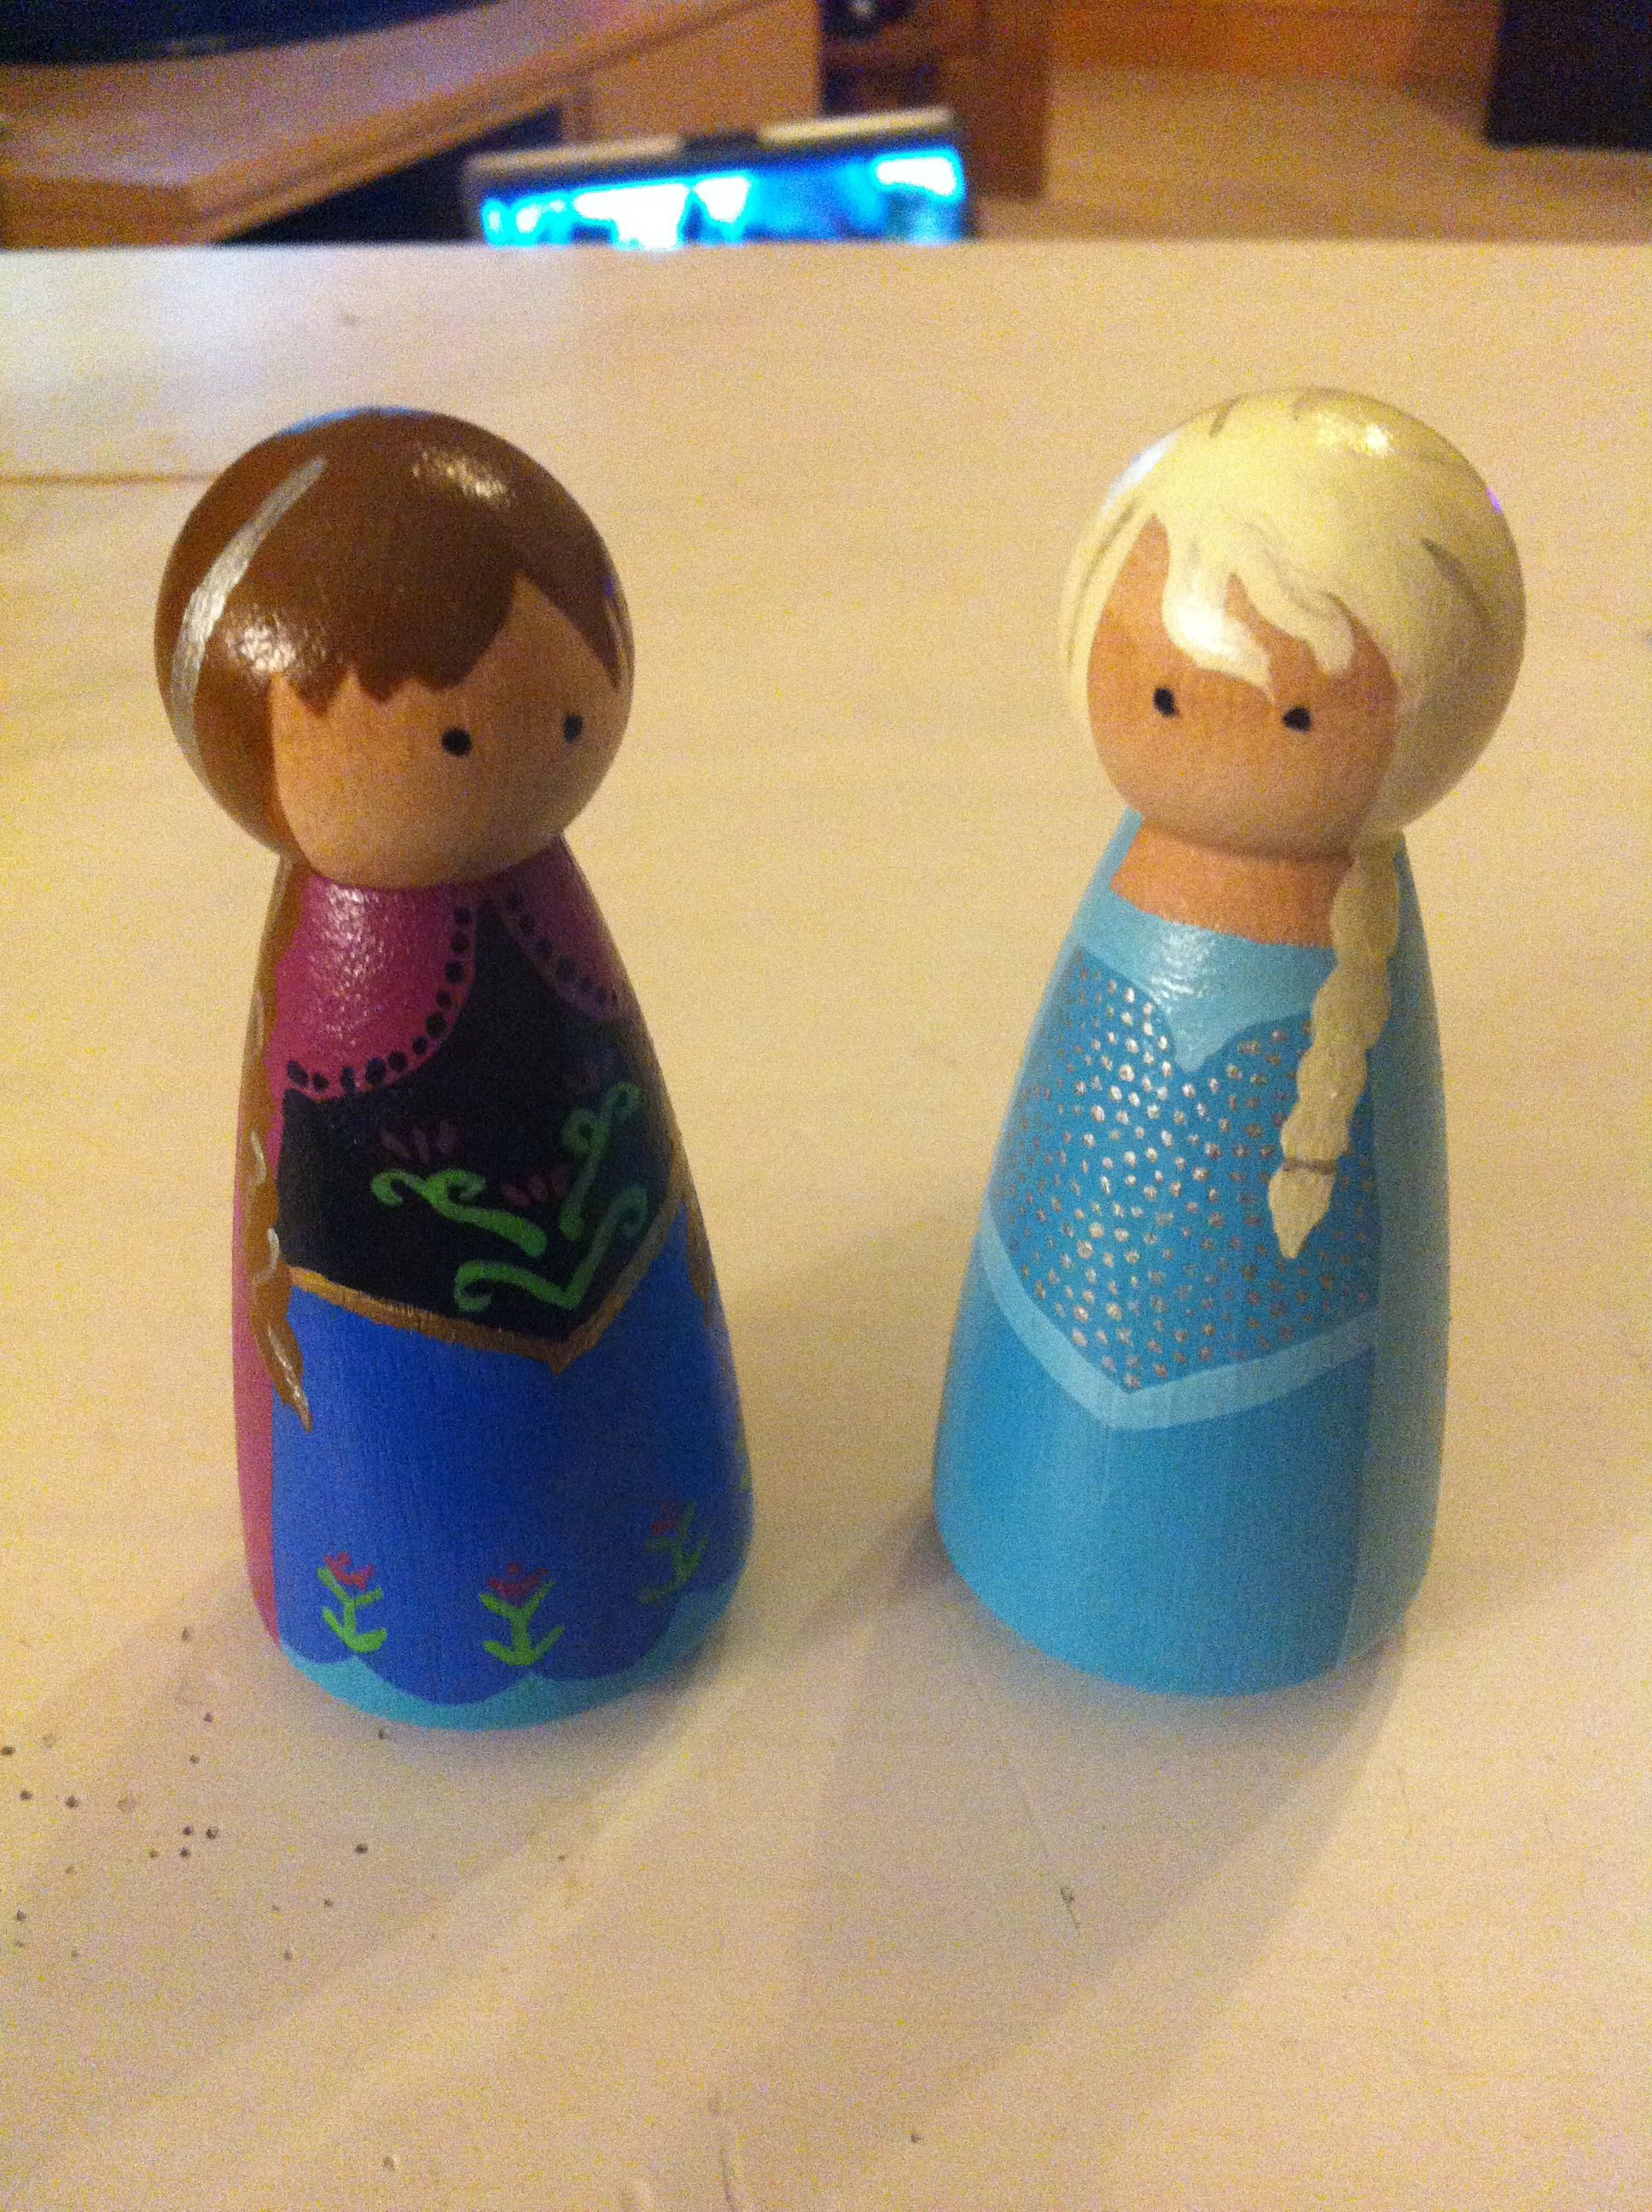 Princess Elsa And Princess Anna Peg Dolls From Disney S